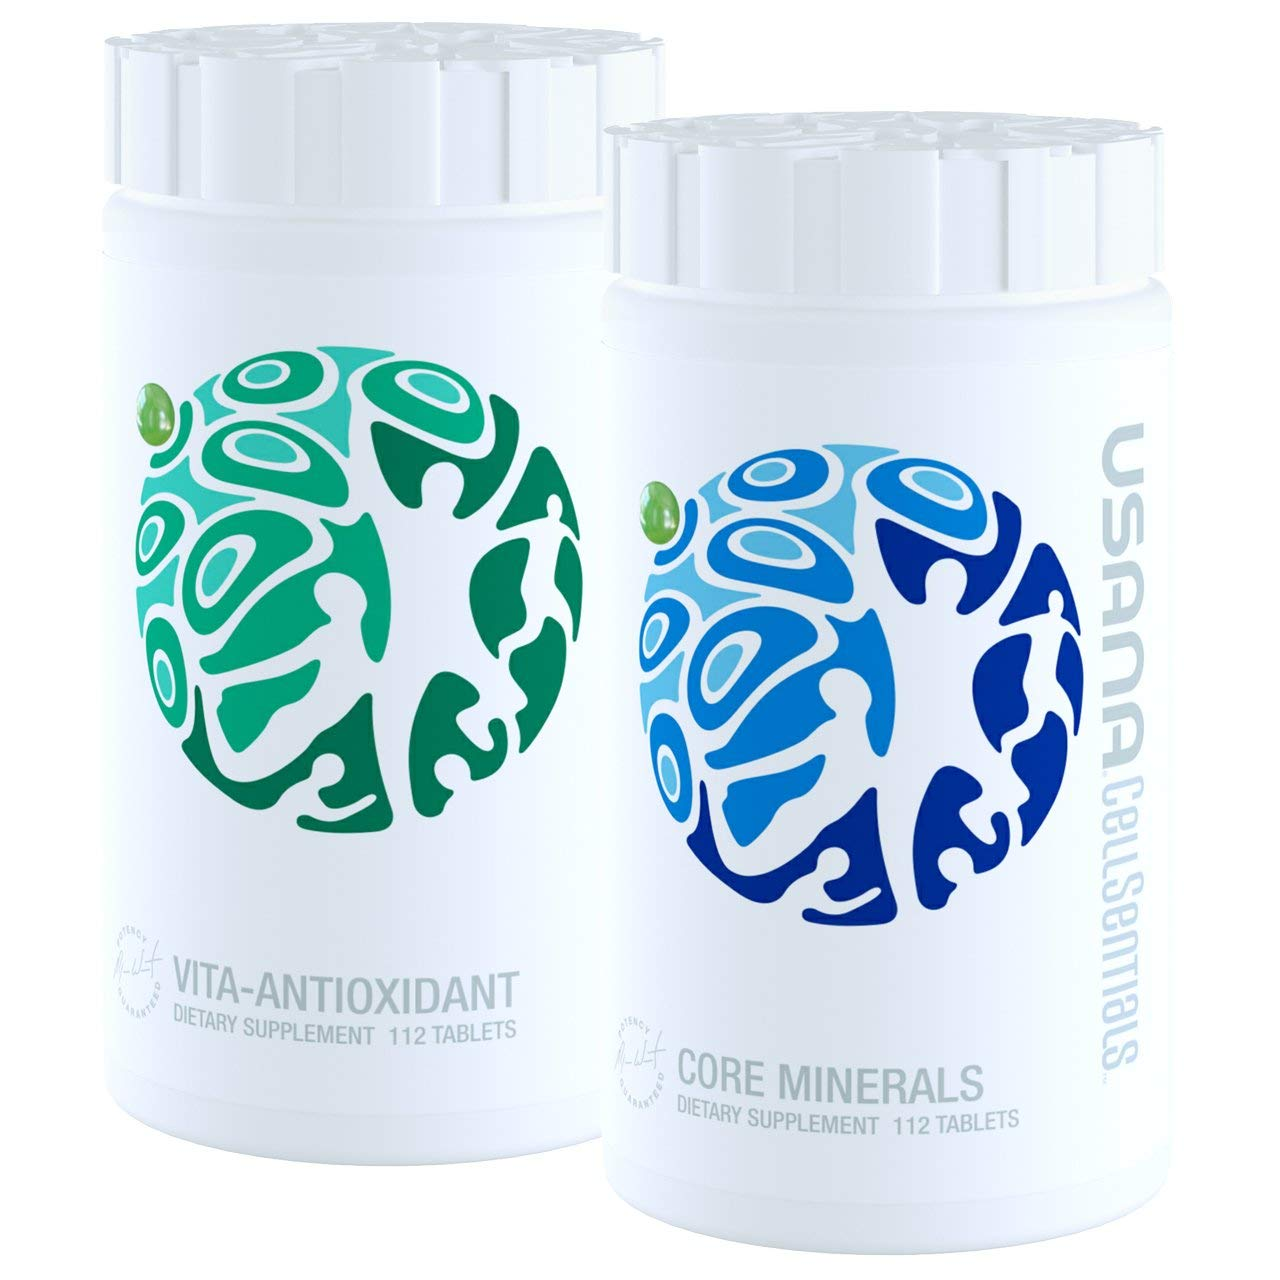 USANA CellSentials triple action cellular nutrition system Core Minerals and Vita